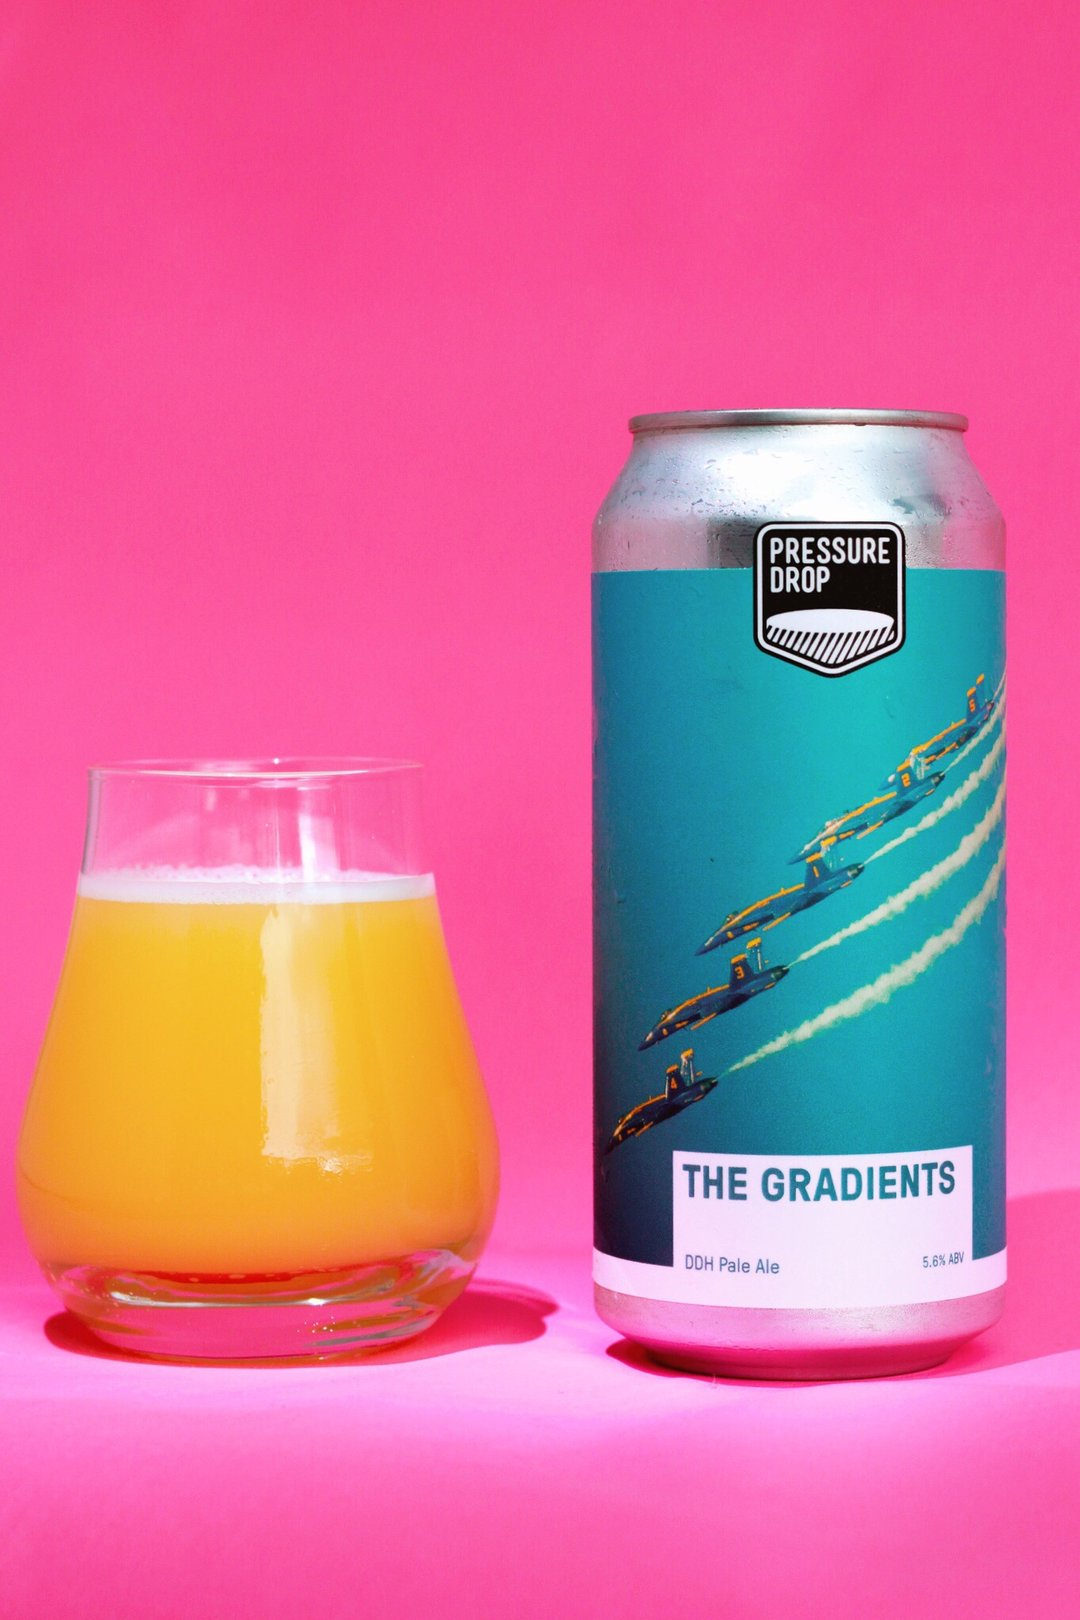 The Gradients - NE Pale Ale 5.8% 440ml Pressure Drop Brewing